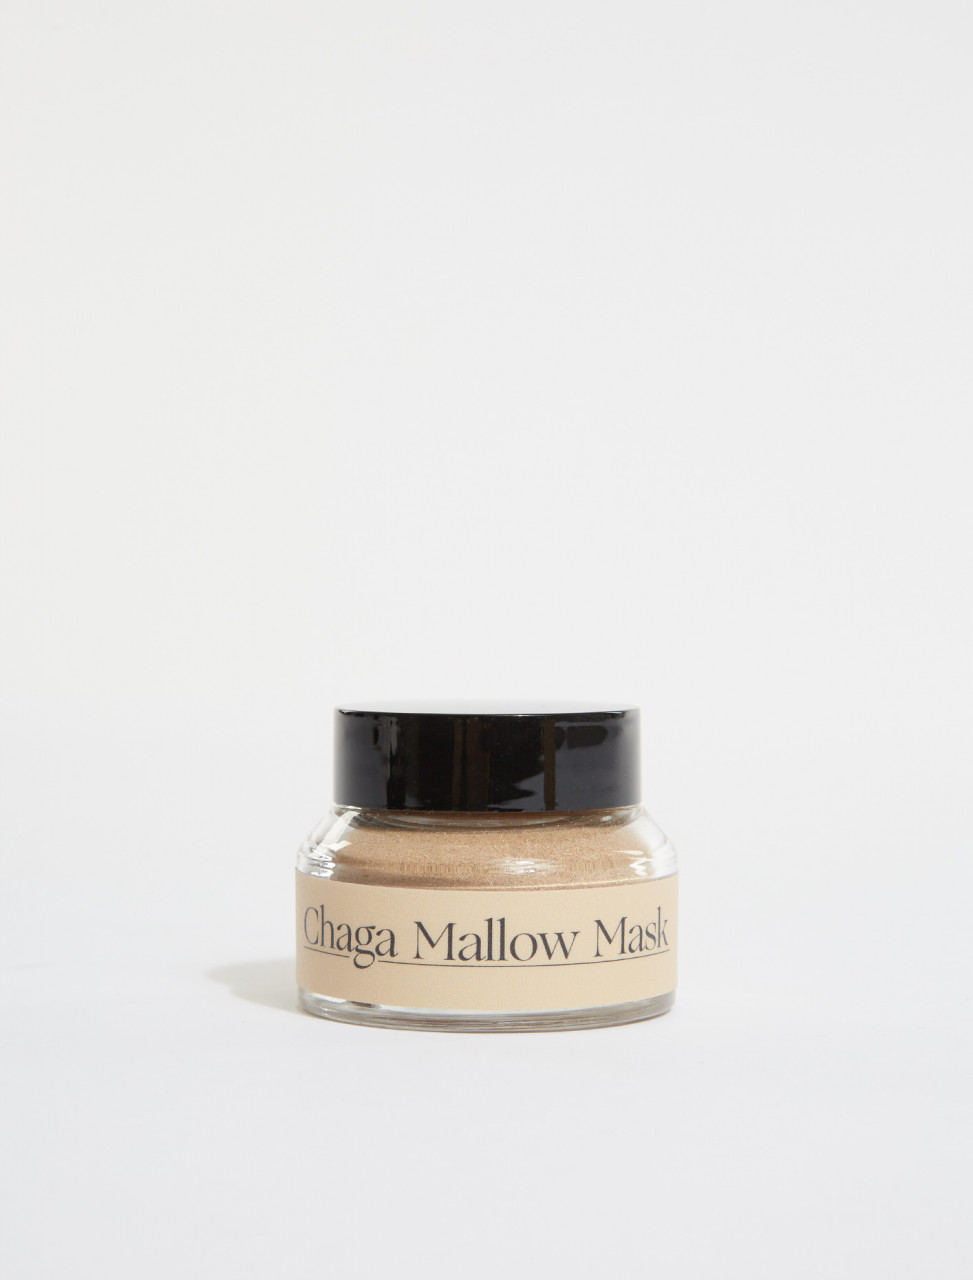 CMM50 PALM OF FERONIA CHAGA MALLOW MASK 50 G